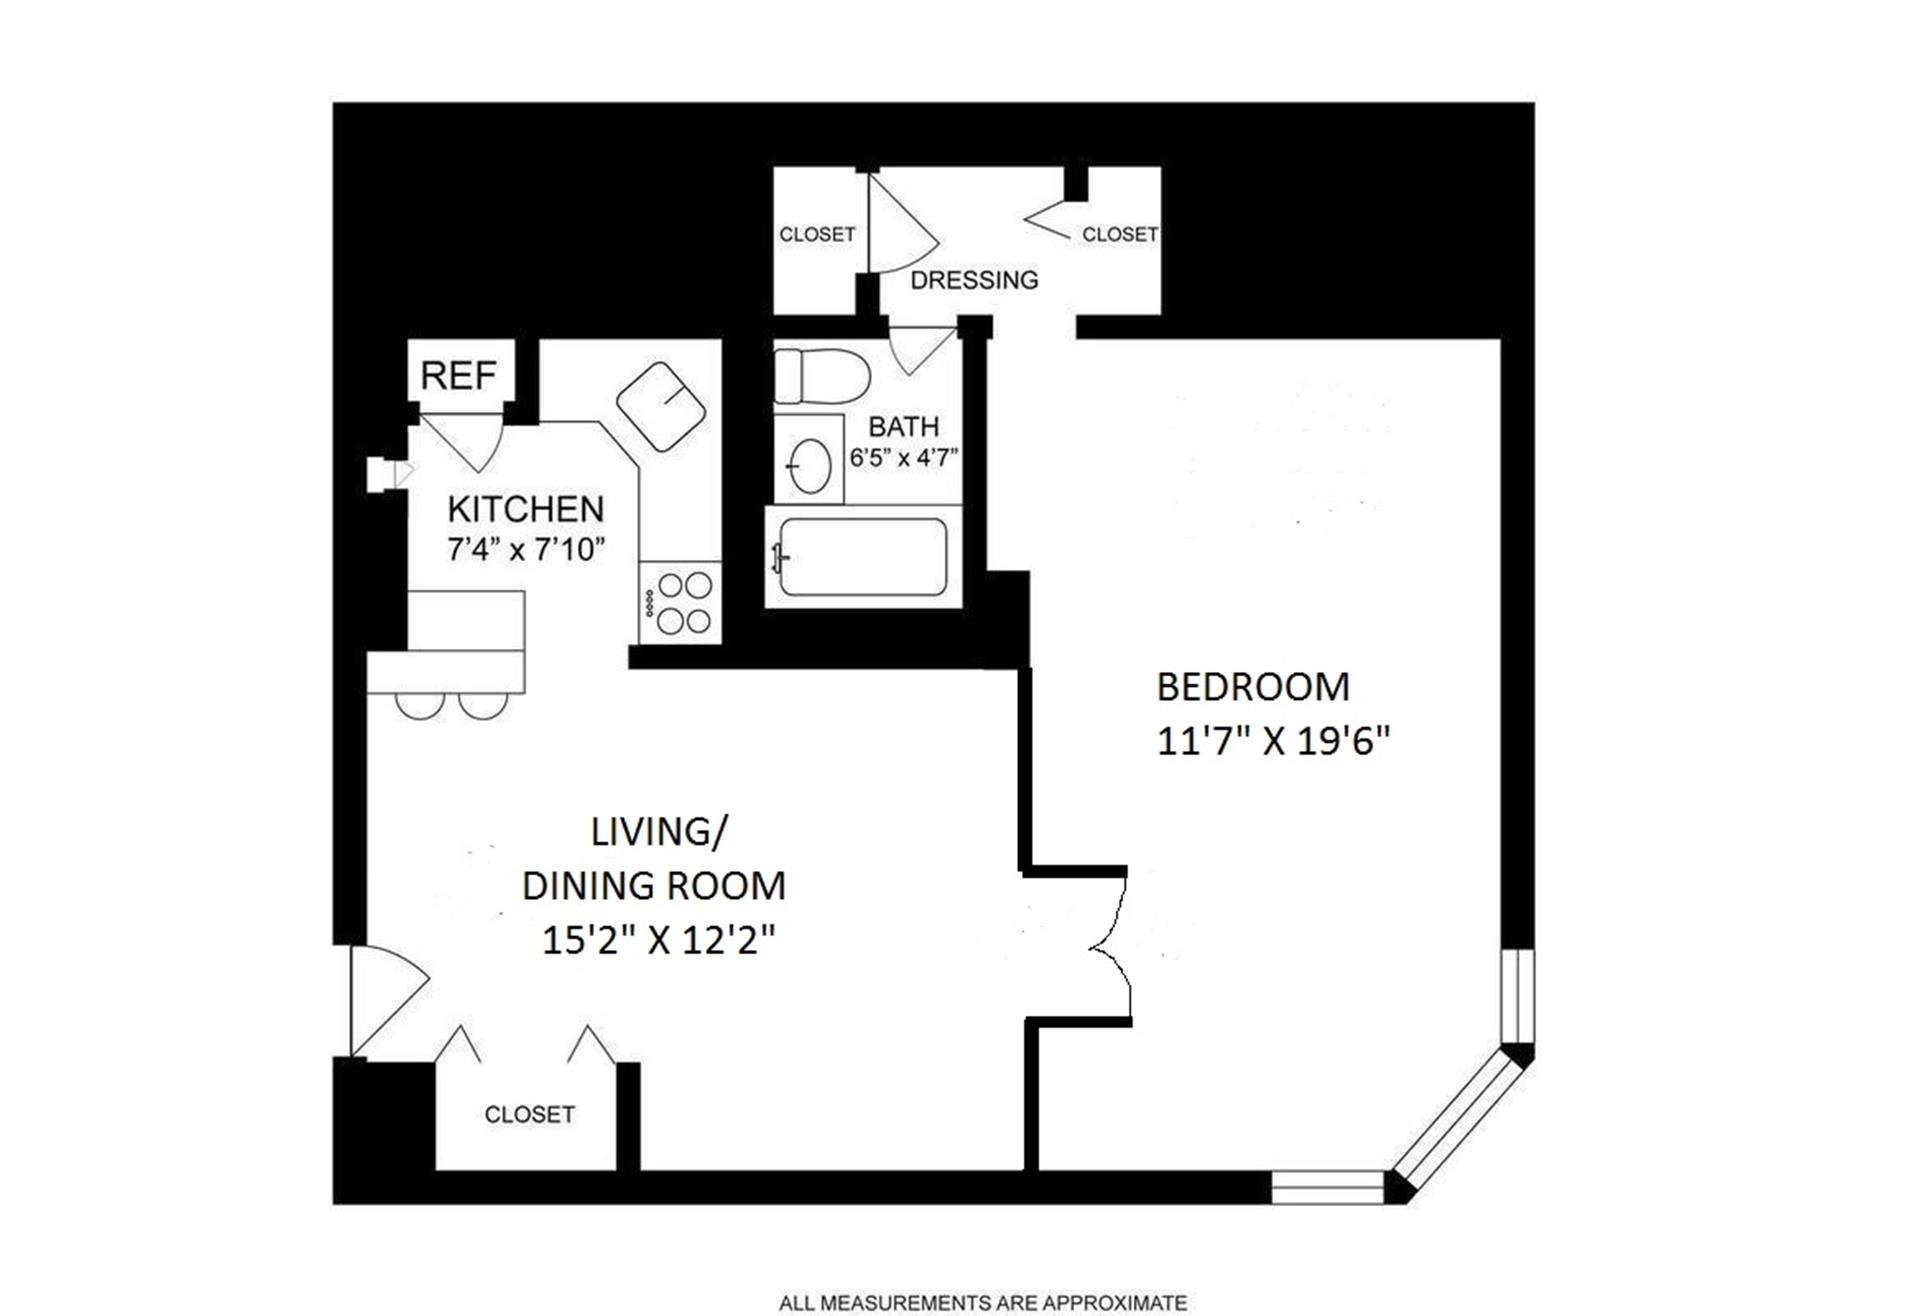 Floor plan of 145 East 15th St, 2N - Gramercy - Union Square, New York